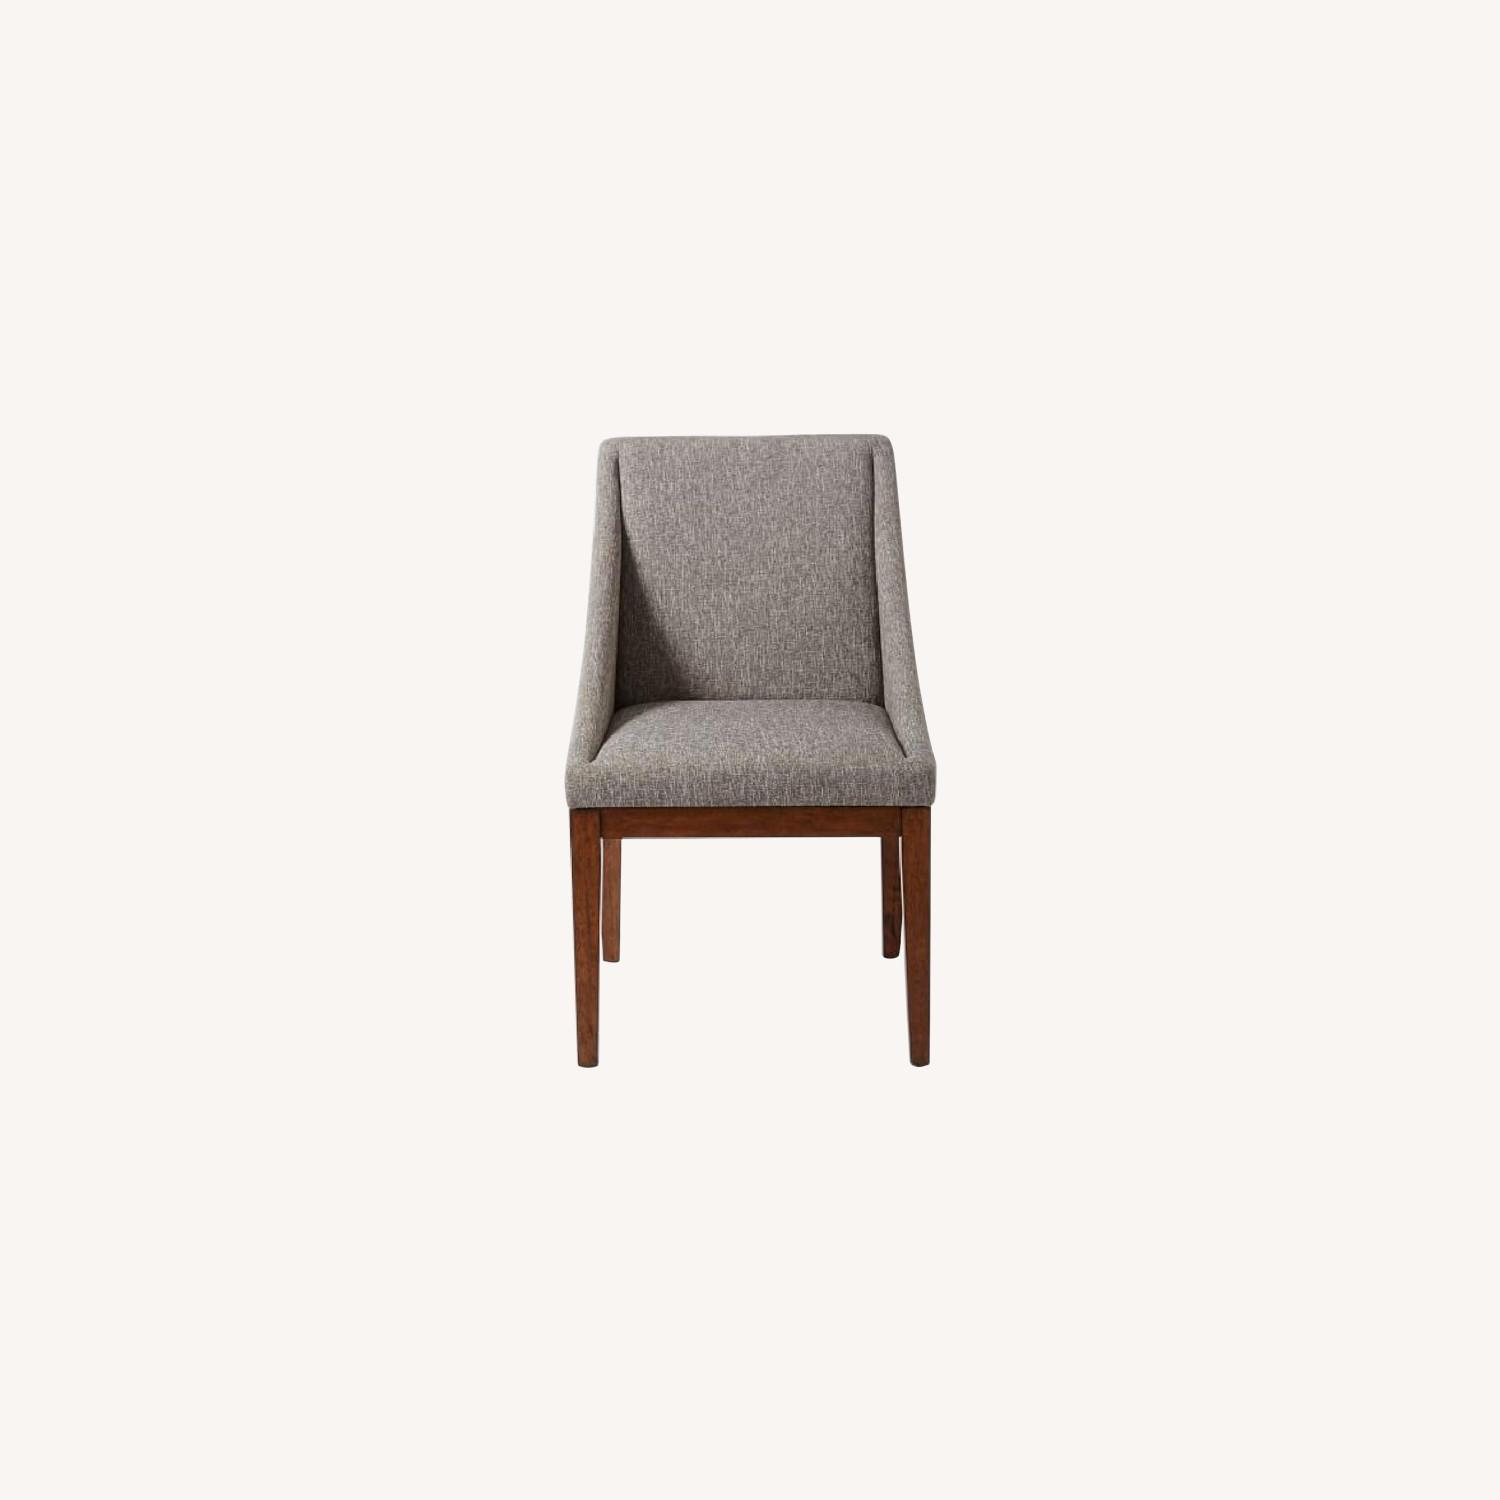 West Elm Curved Upholstered Chairs - image-0